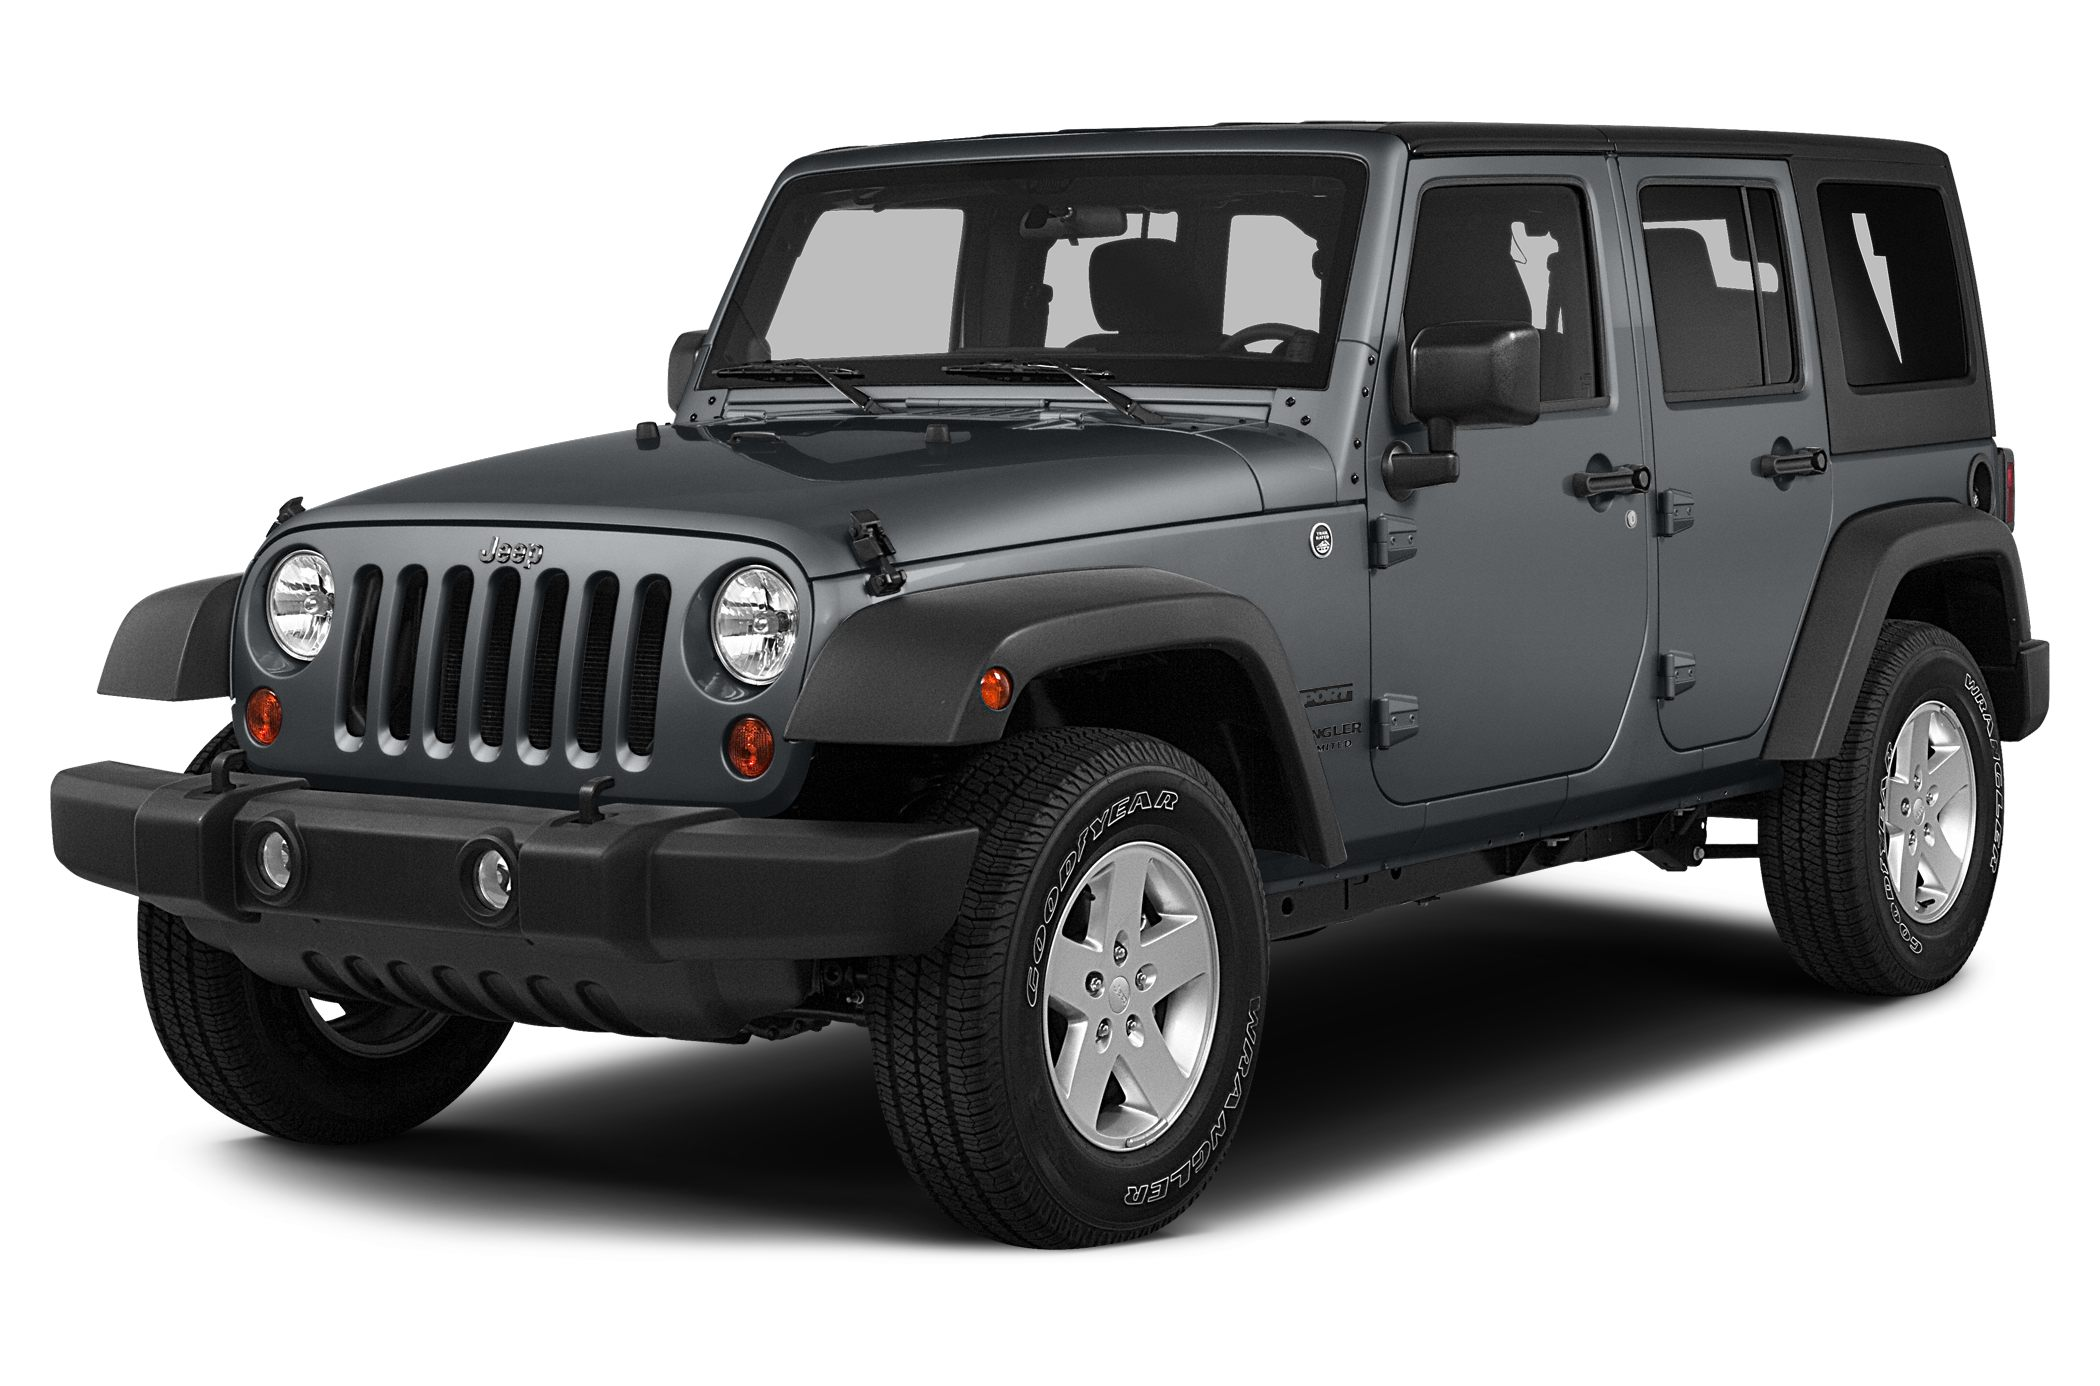 2013 Jeep Wrangler Unlimited Sahara SUV for sale in Statesville for $30,987 with 39,842 miles